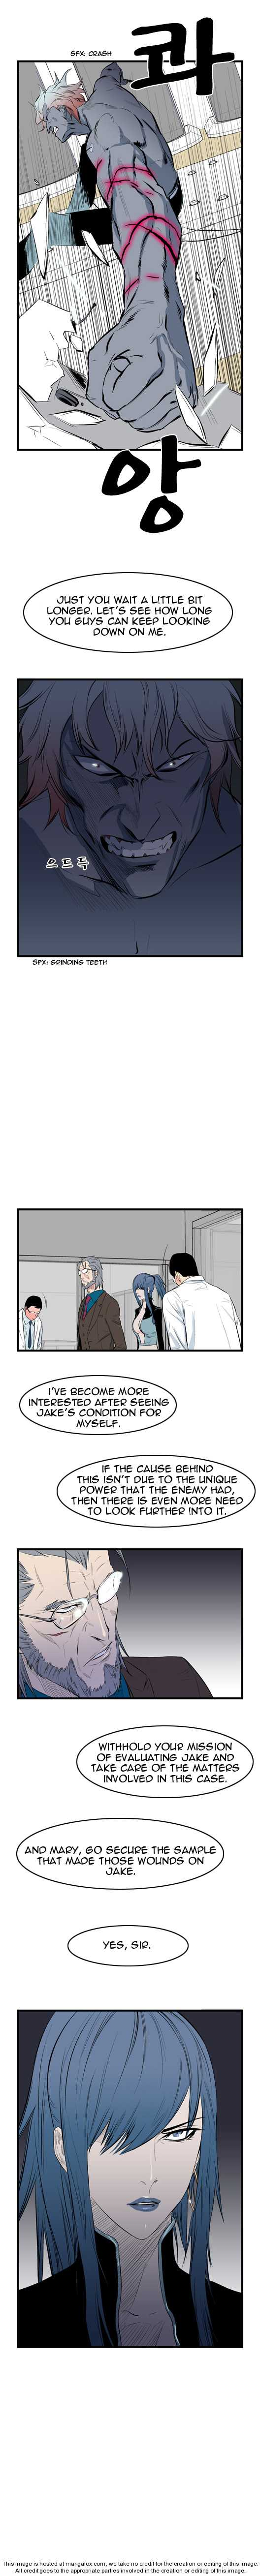 Noblesse 55 Page 3